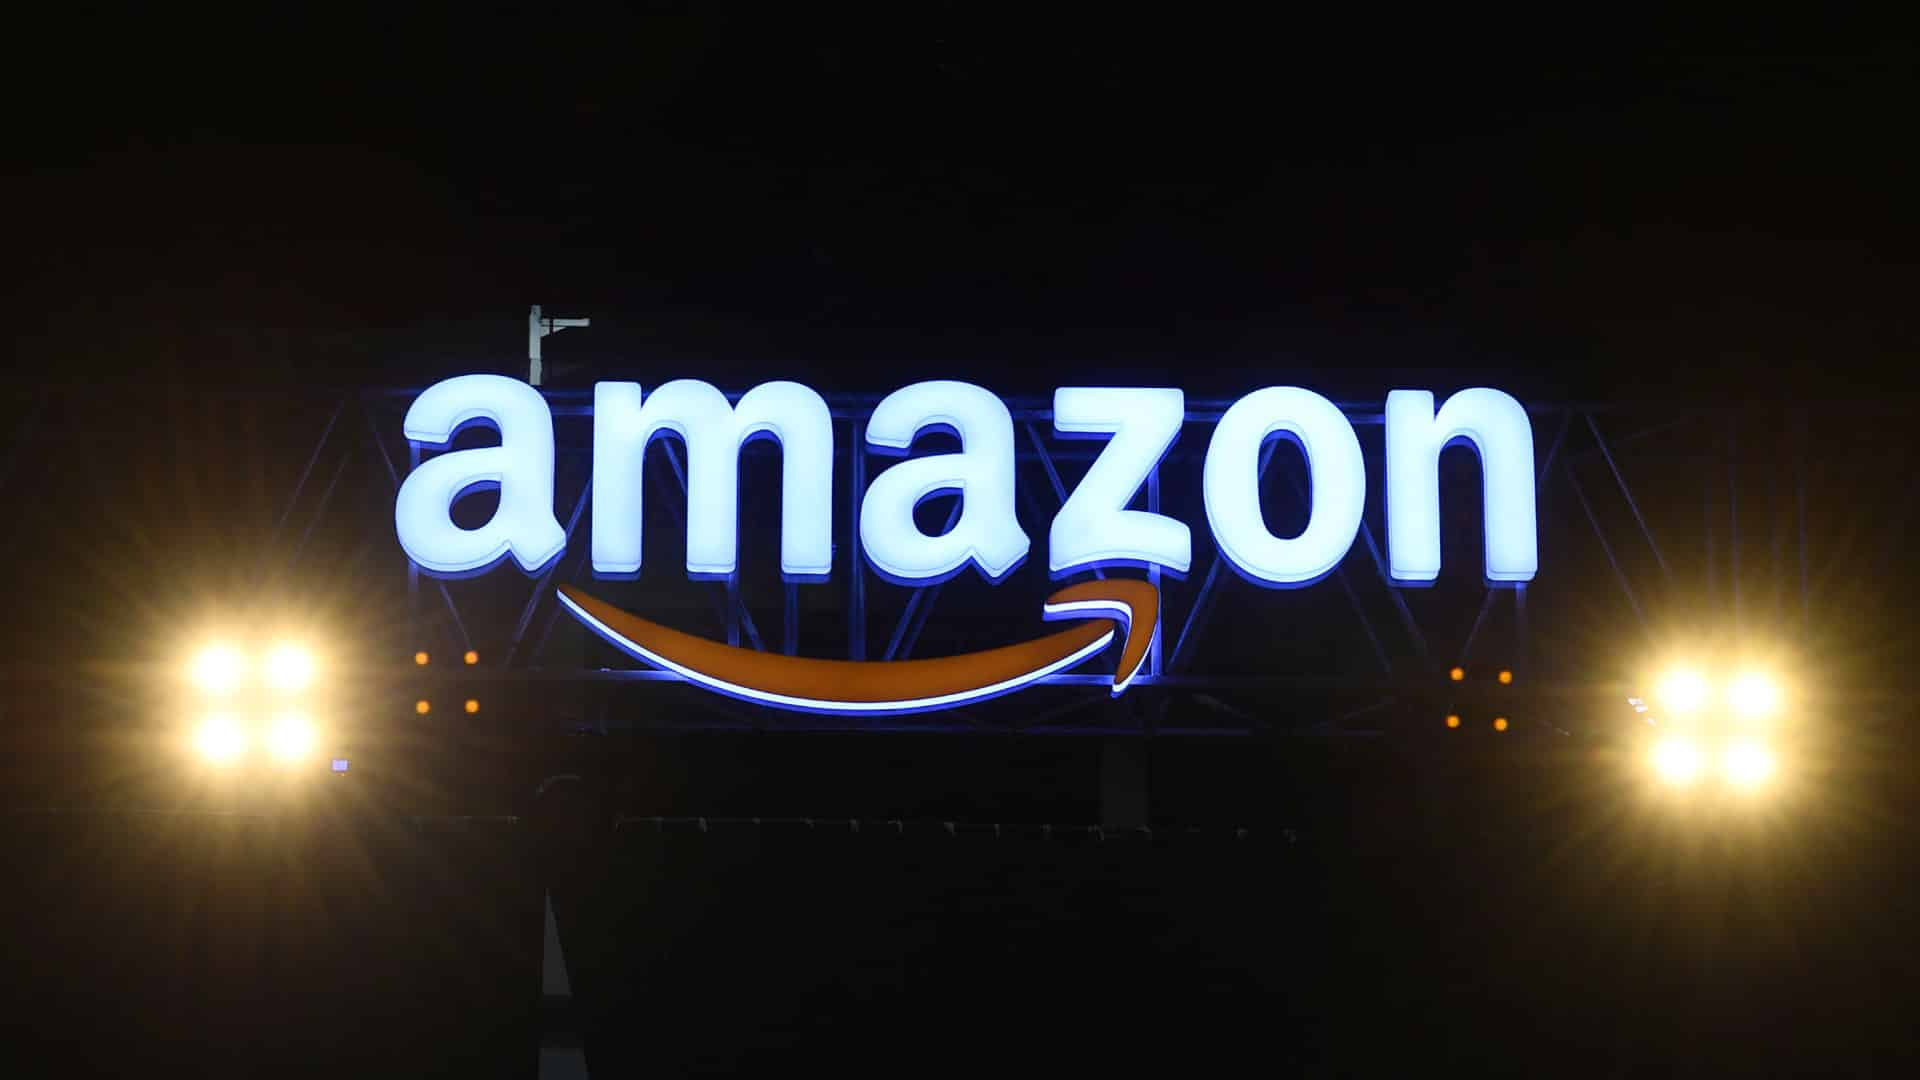 Amazon launches AFBP to prepare MBA graduates for leadership roles at co